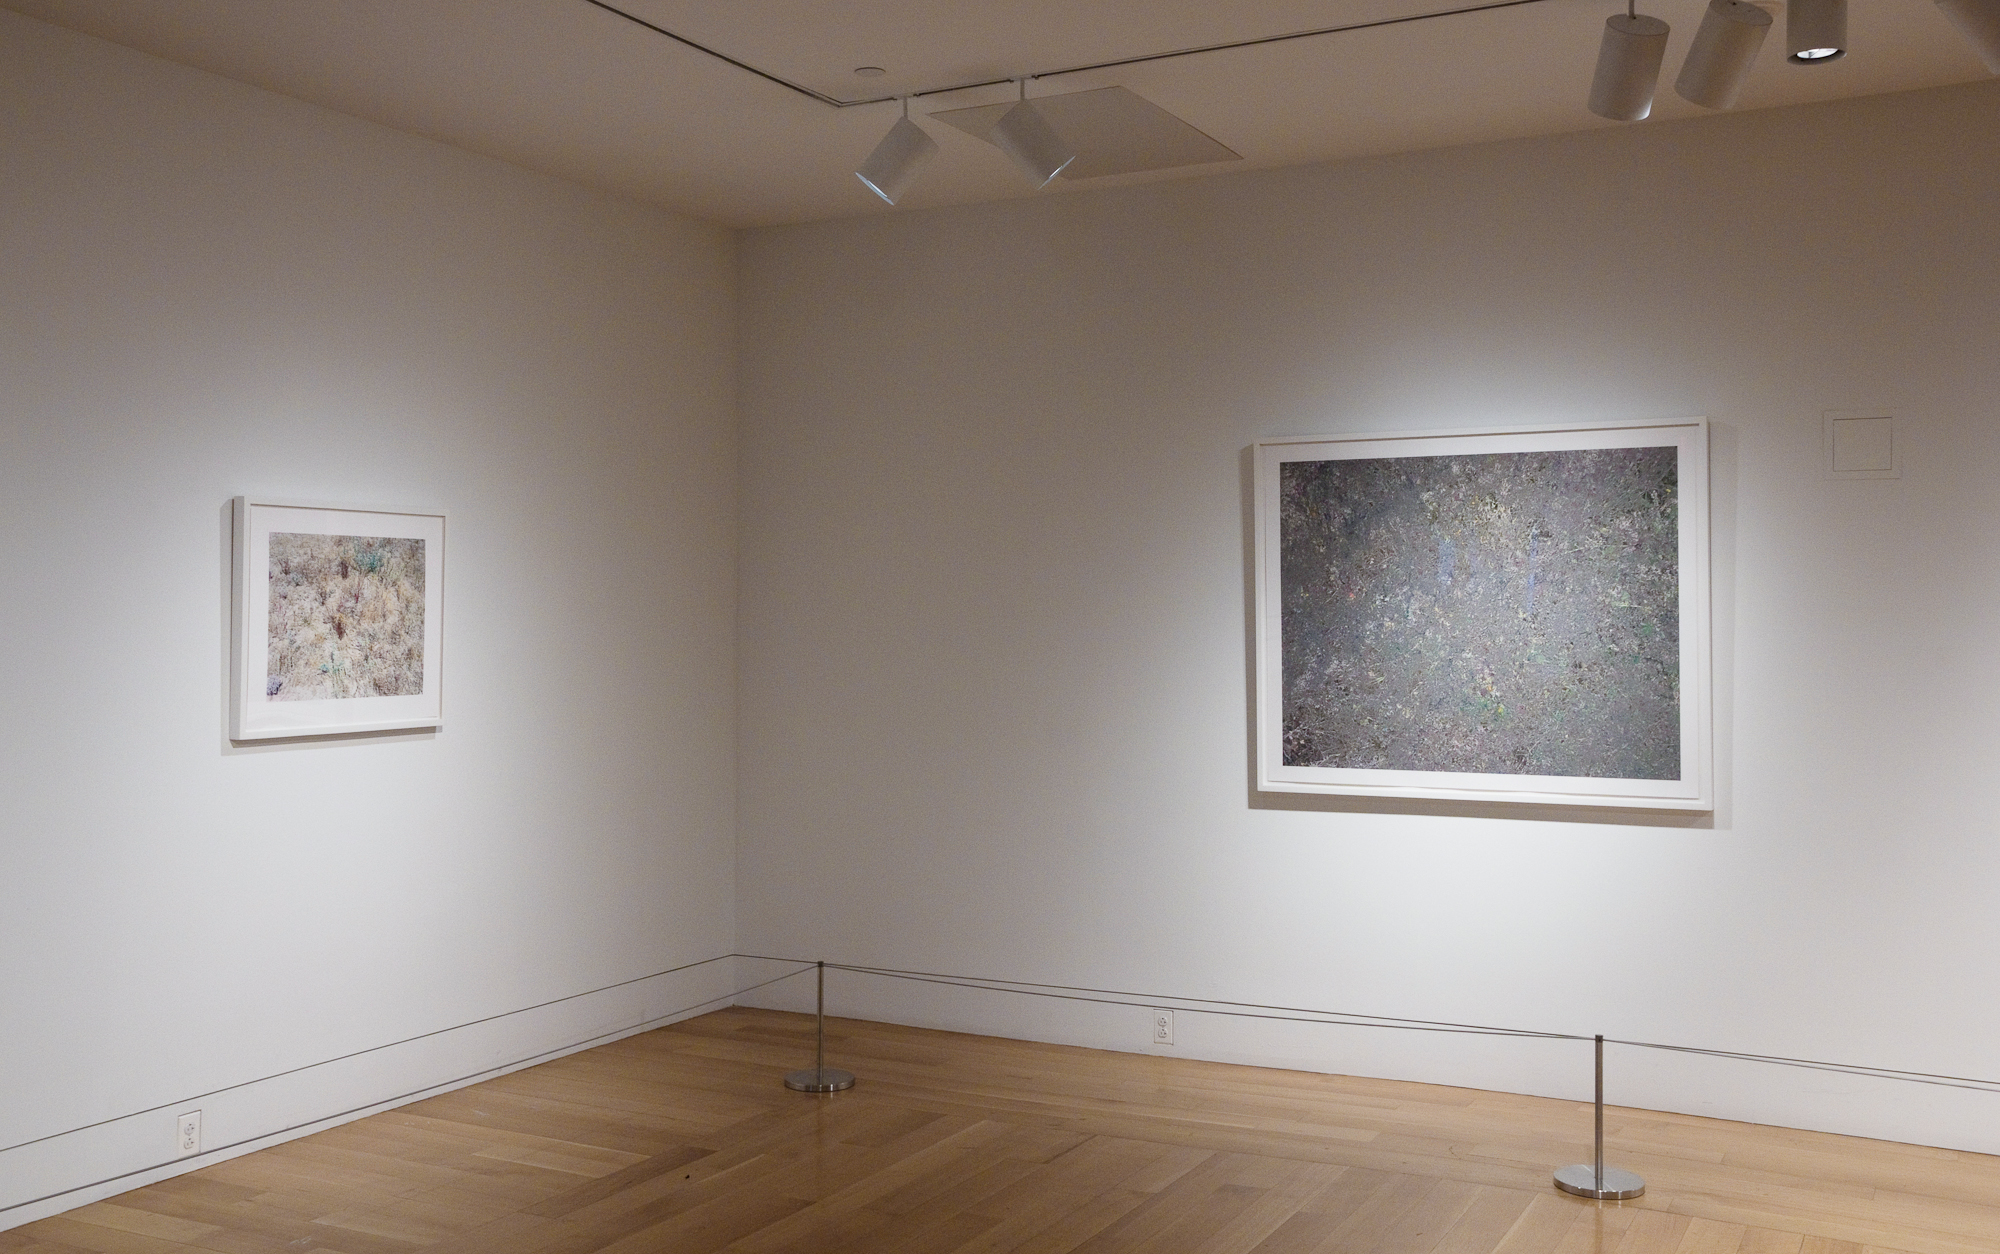 Installation view from the exhibition here. at the Pennsylvania Academy of the Fine Arts in 2011.